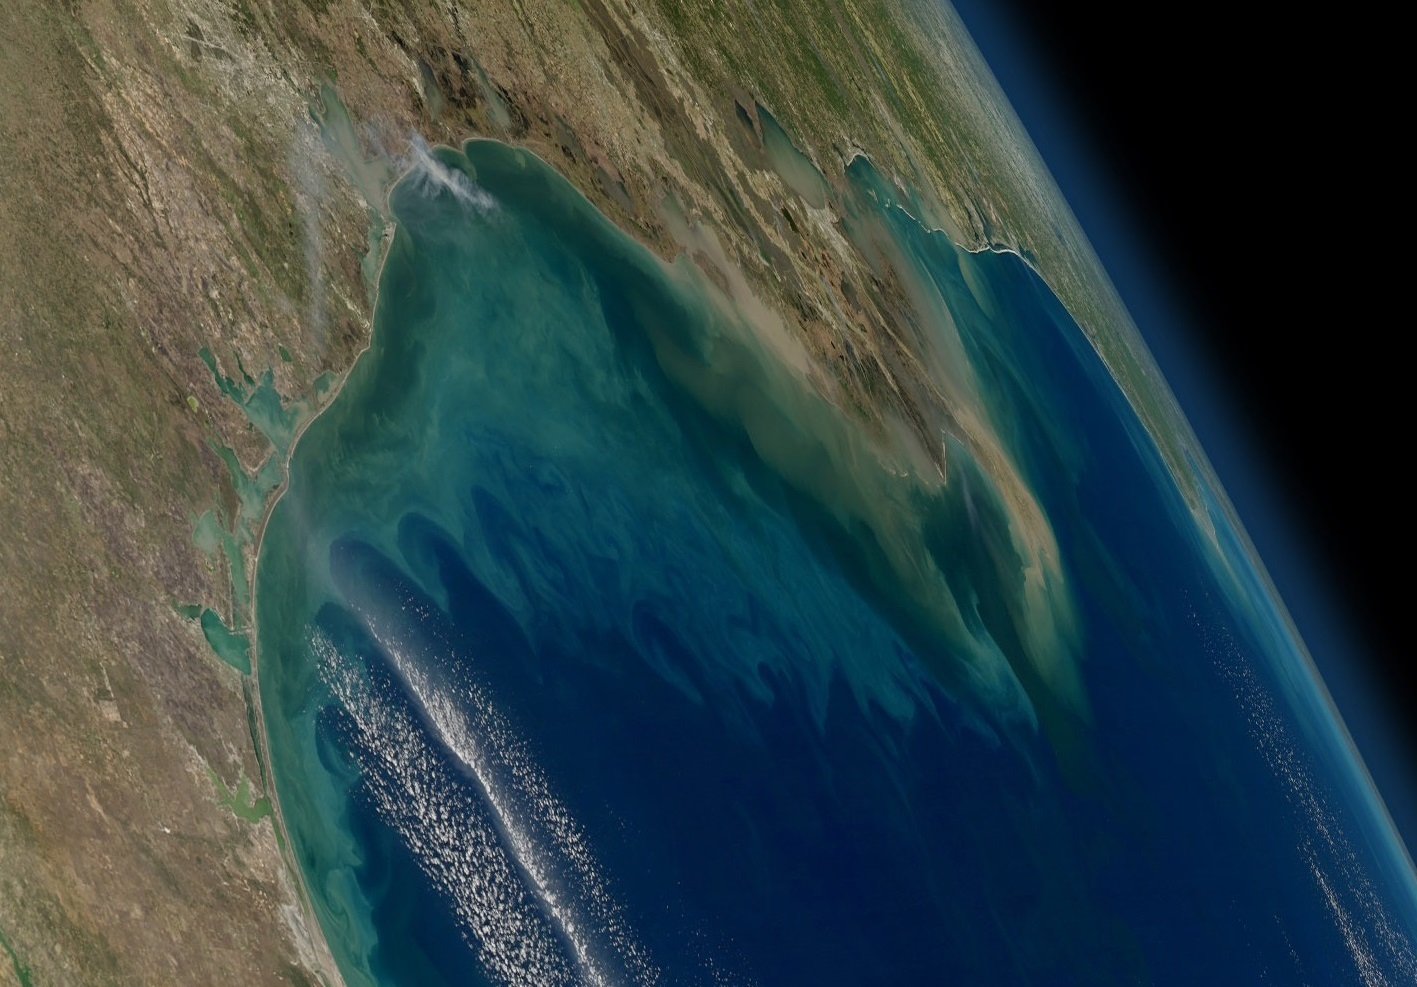 NASA's Geosynchronous Littoral Imaging and Monitoring Radiometer (GLIMR) instrument will collect high-resolution observations of coastal ecosystems in such areas as the northern Gulf of Mexico, shown in this image with phytoplankton blooms stretching from the Texas and Louisiana coast (left) across the Mississippi River delta (center) toward Florida (far right). Credit: NASA